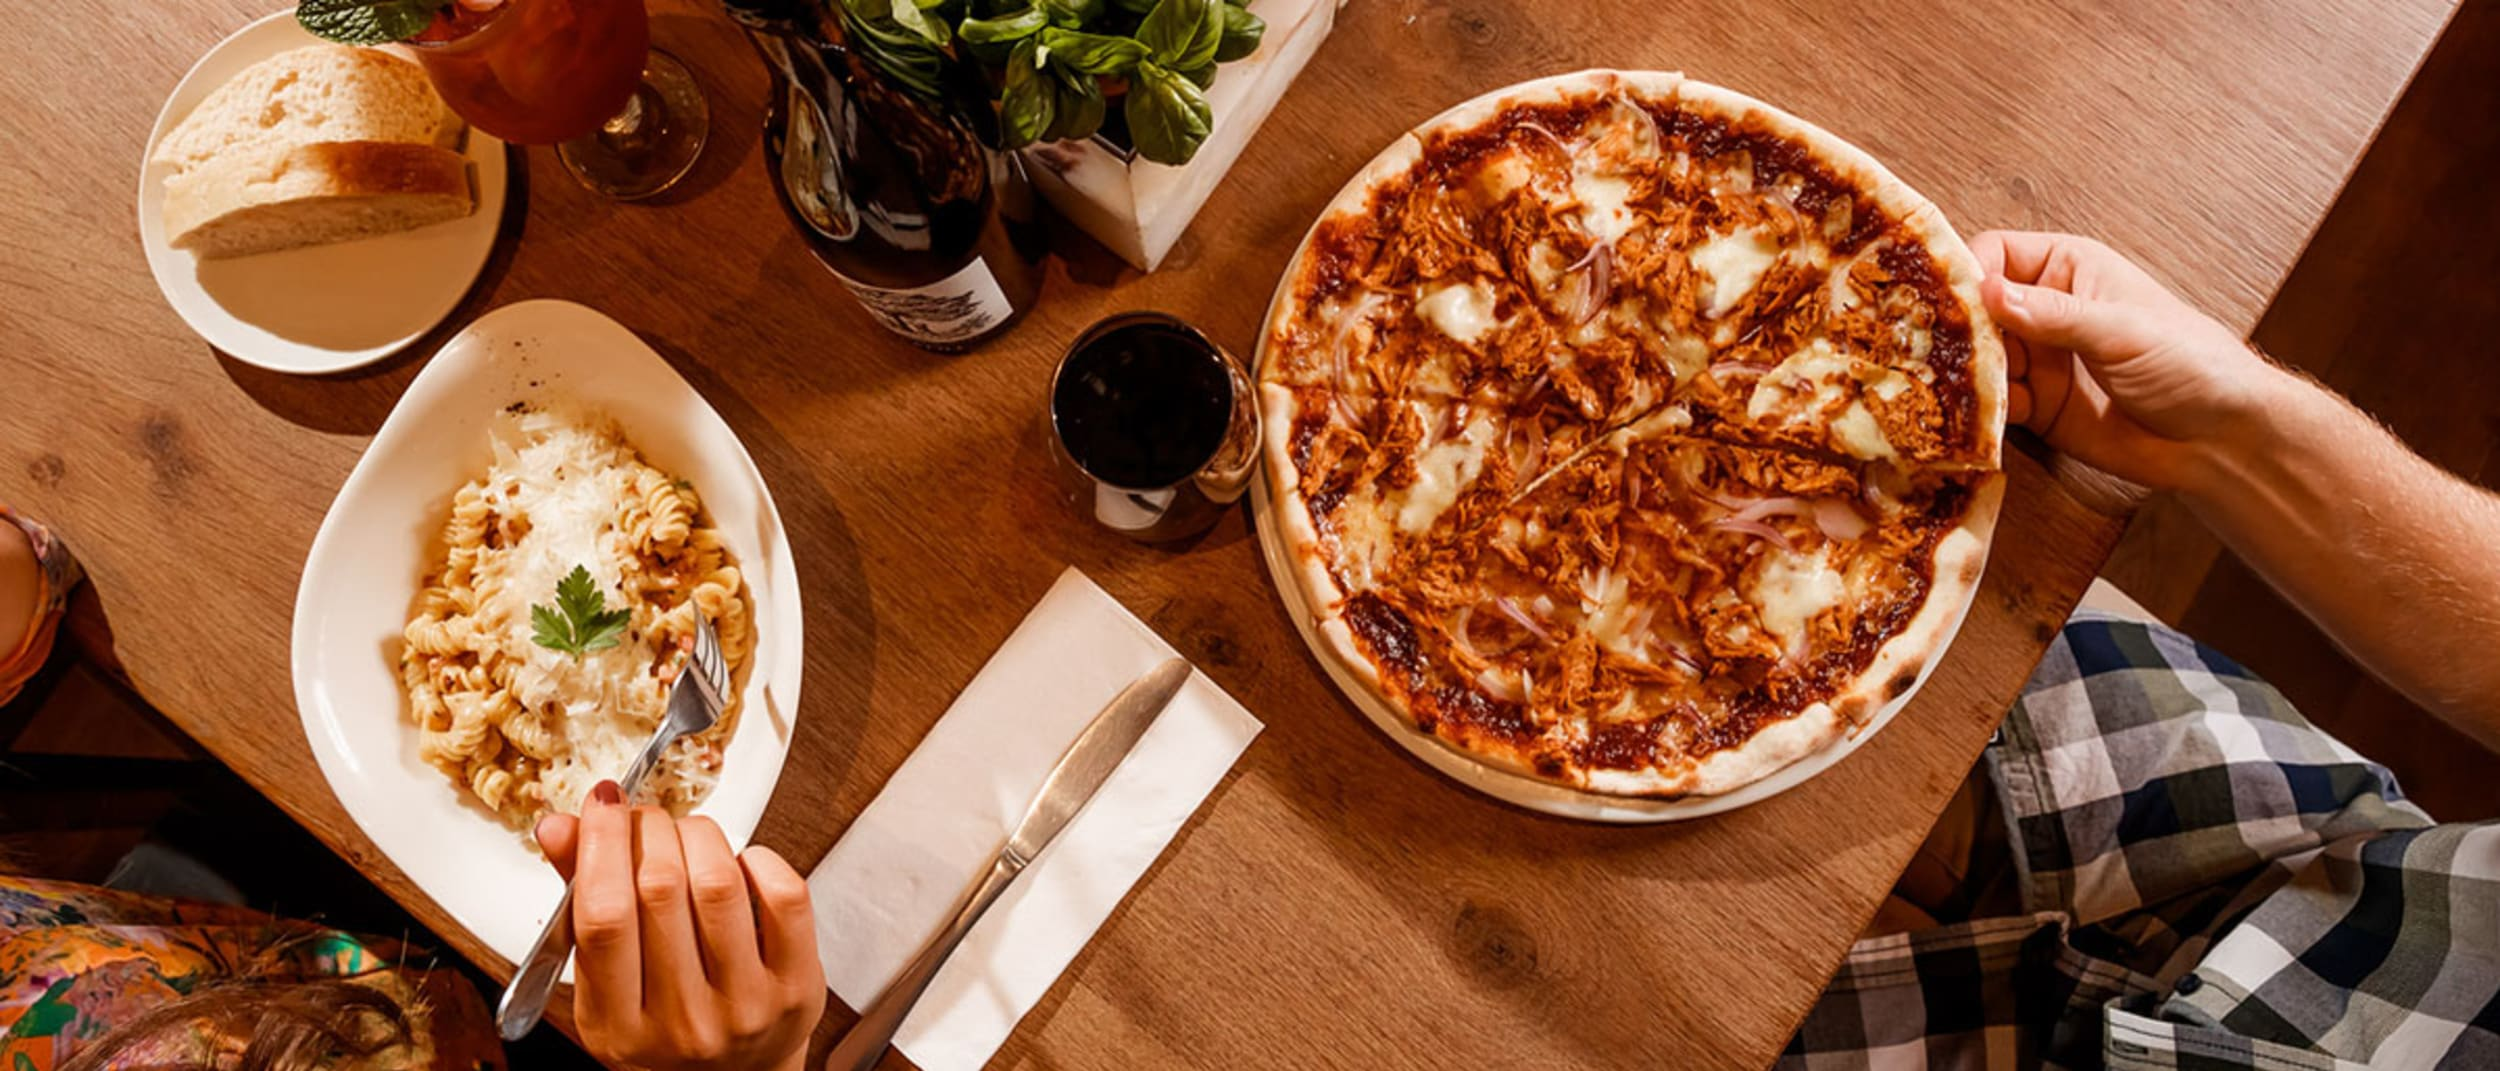 Student Sesh - 20% off for students at Vapiano